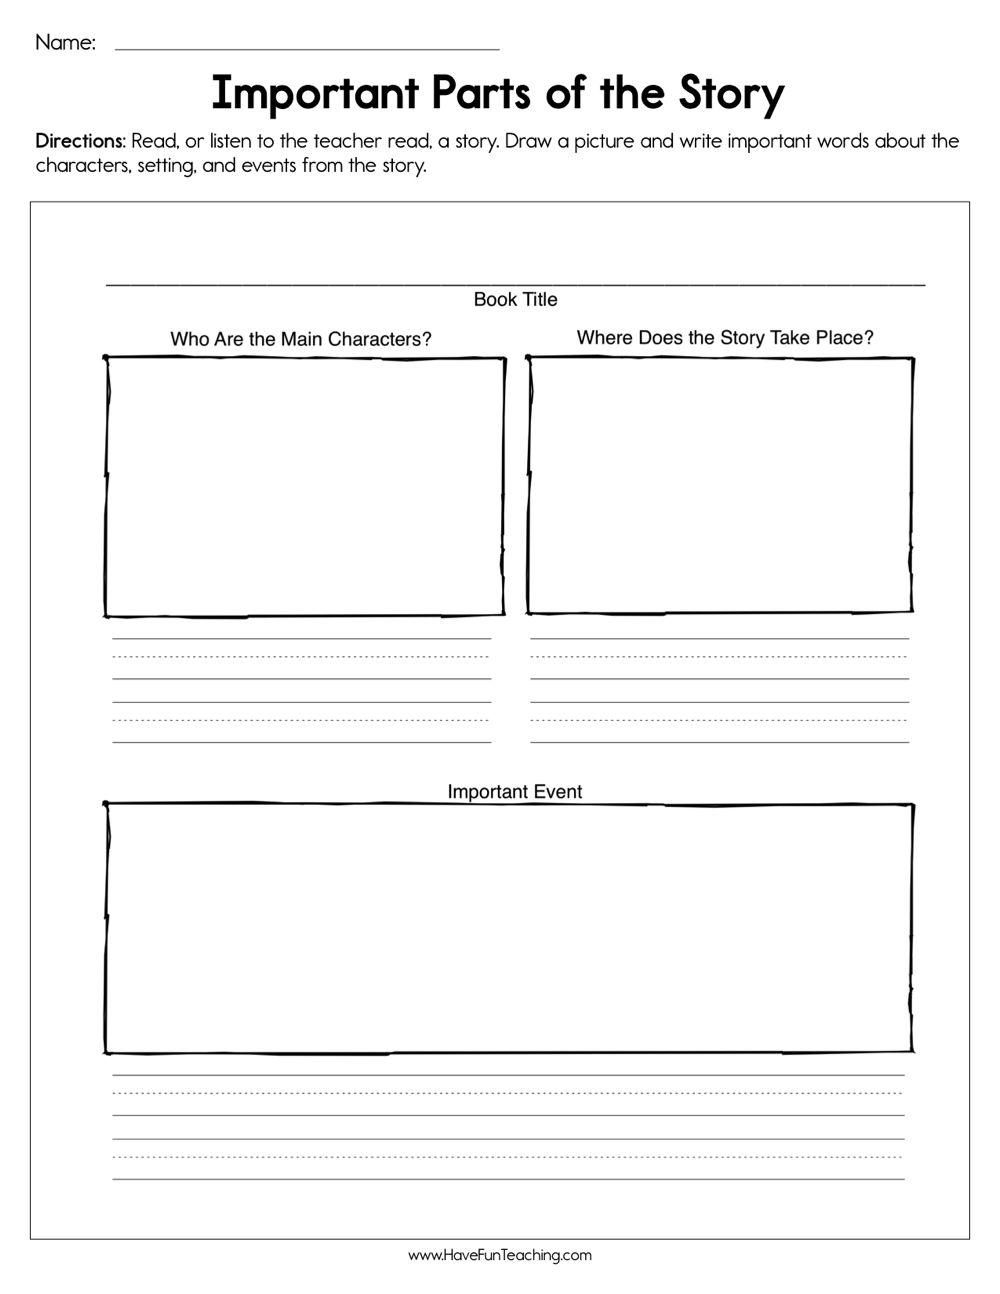 Pin By Have Fun Teaching On First Grade Have Fun Teaching Teaching Story Elements Reading Graphic Organizers